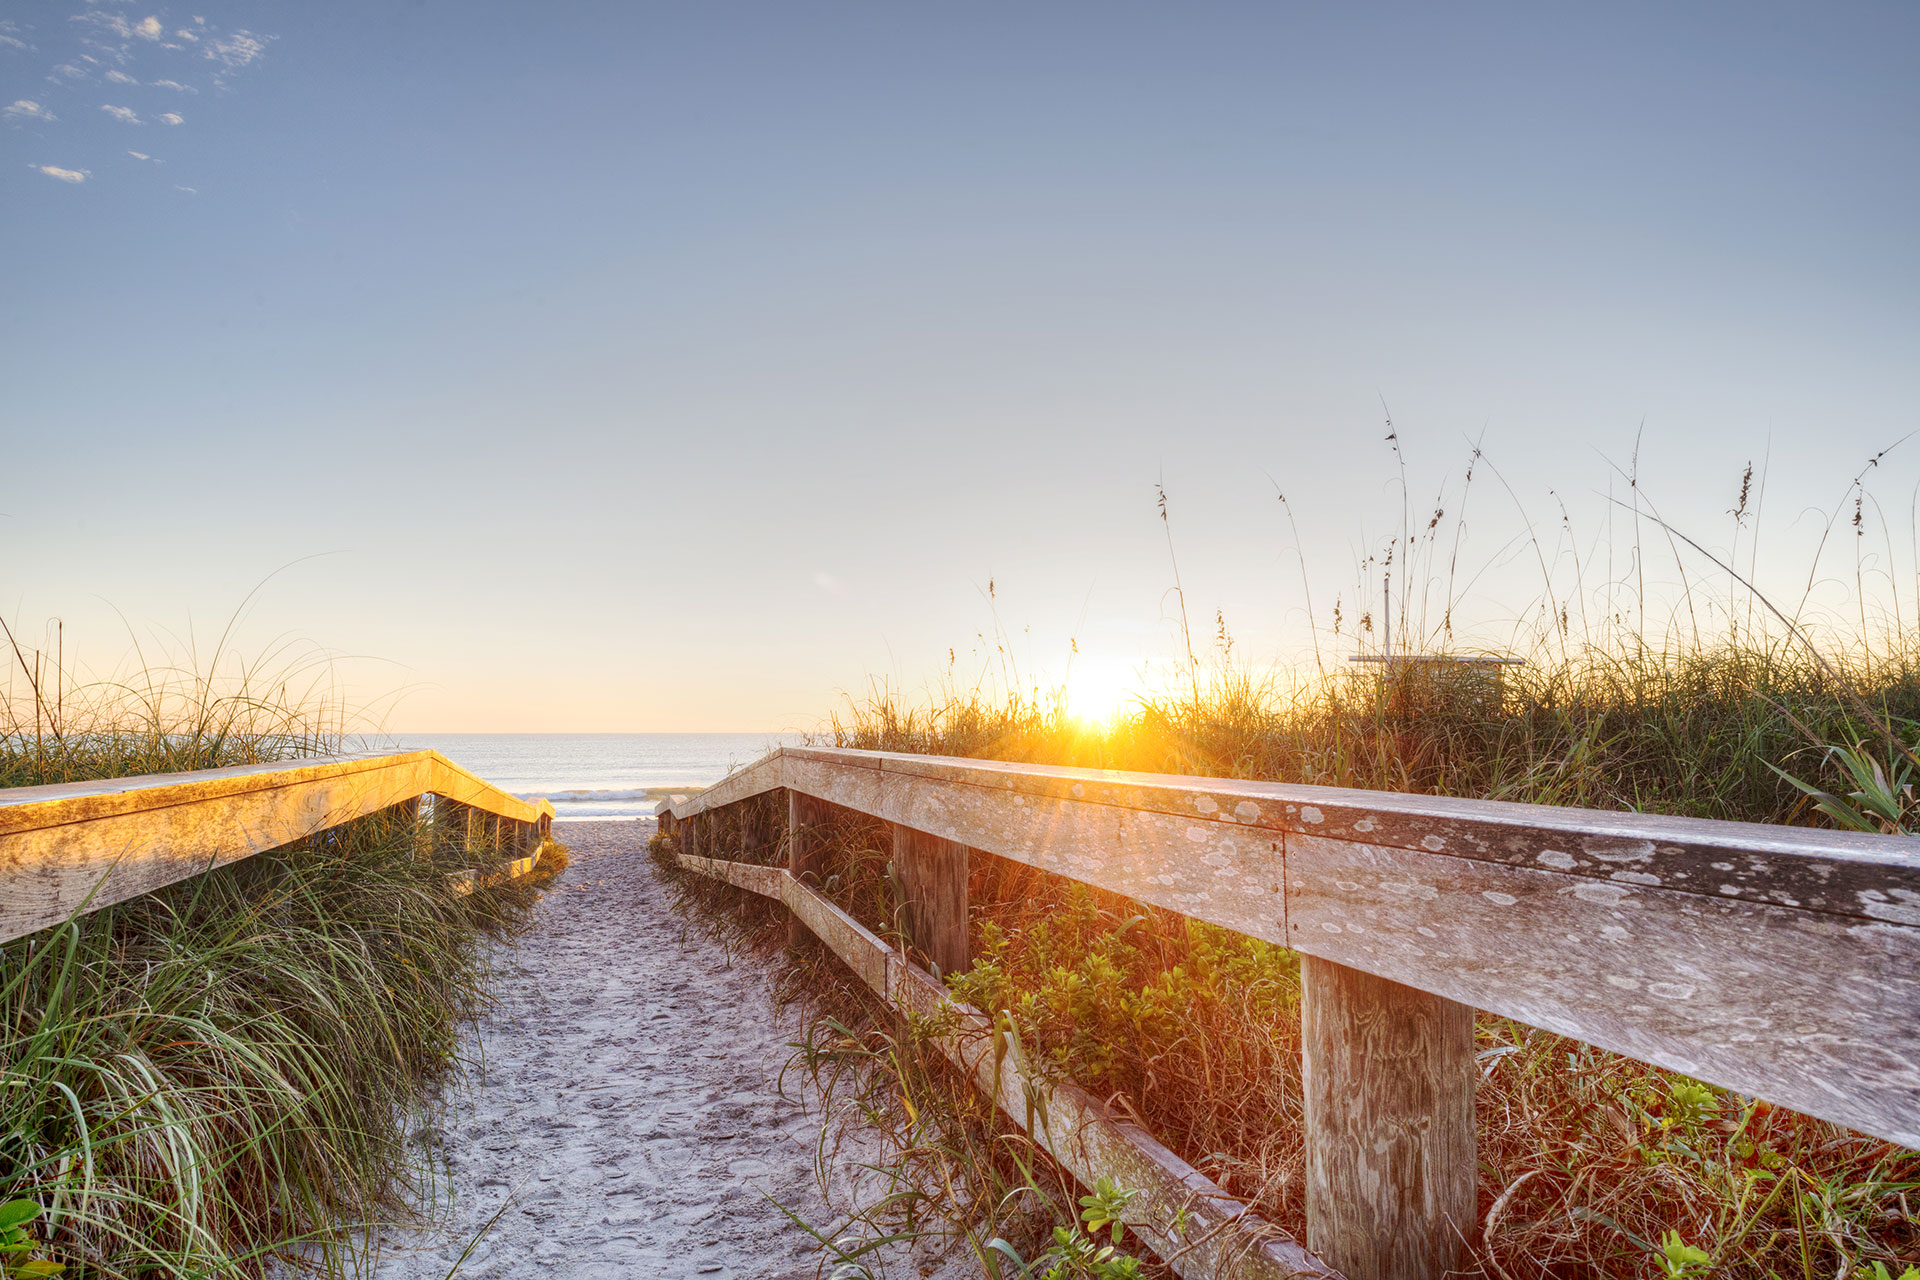 Cocoa Beach, Florida at Sunset; Courtesy of Jesse Kunerth/Shutterstock.com